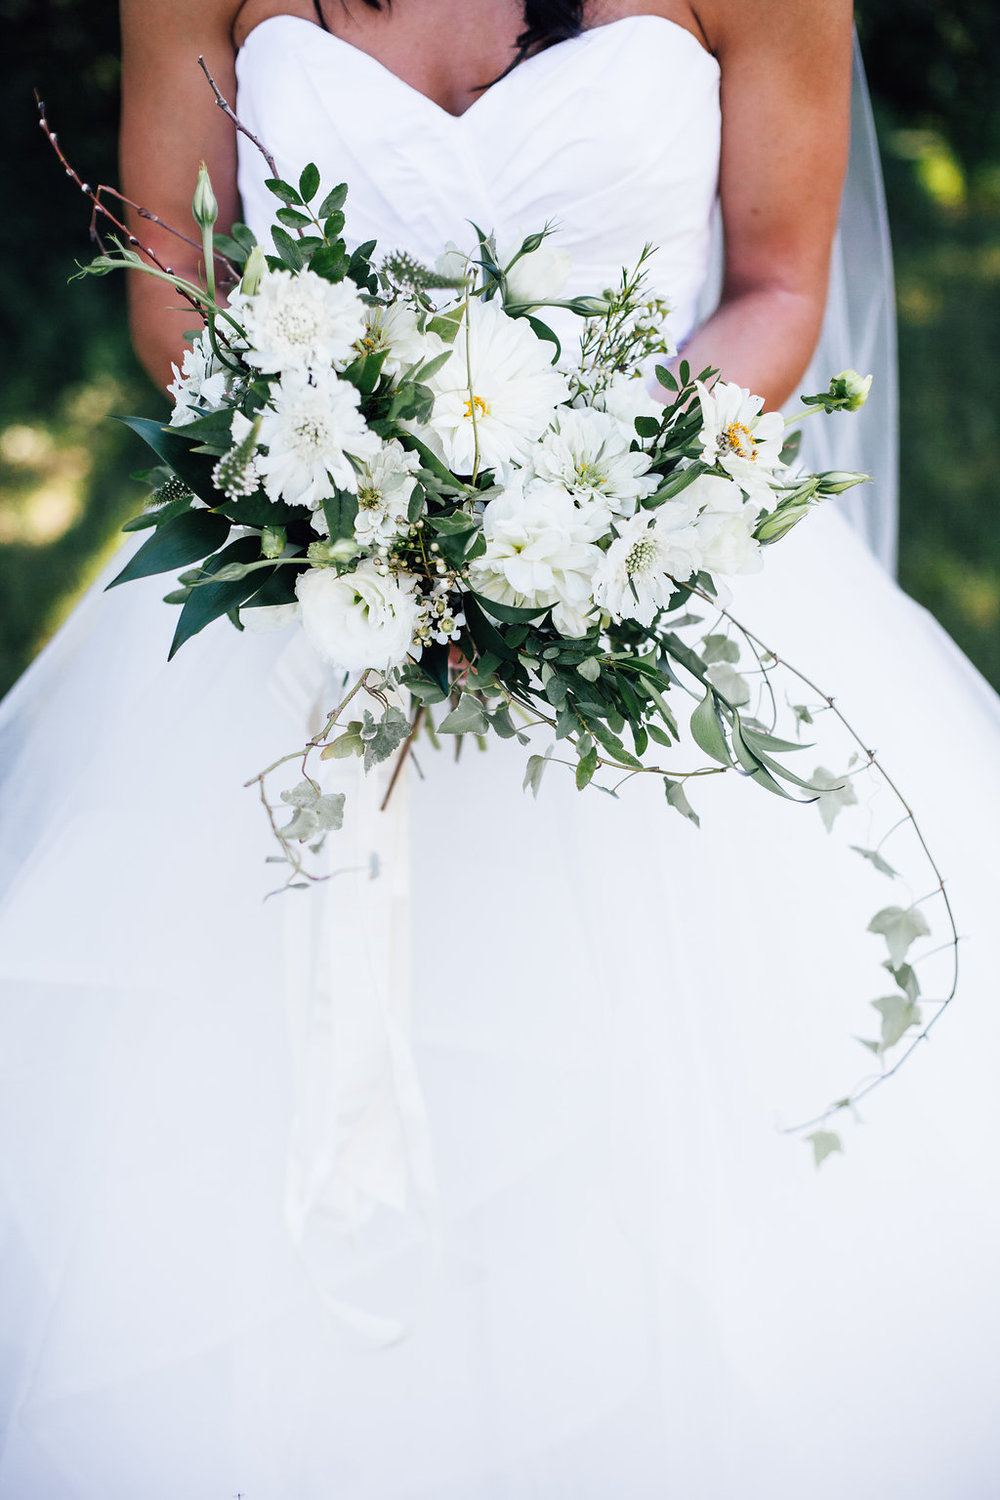 Rustic White Wedding Bouquet - Stone House Creative